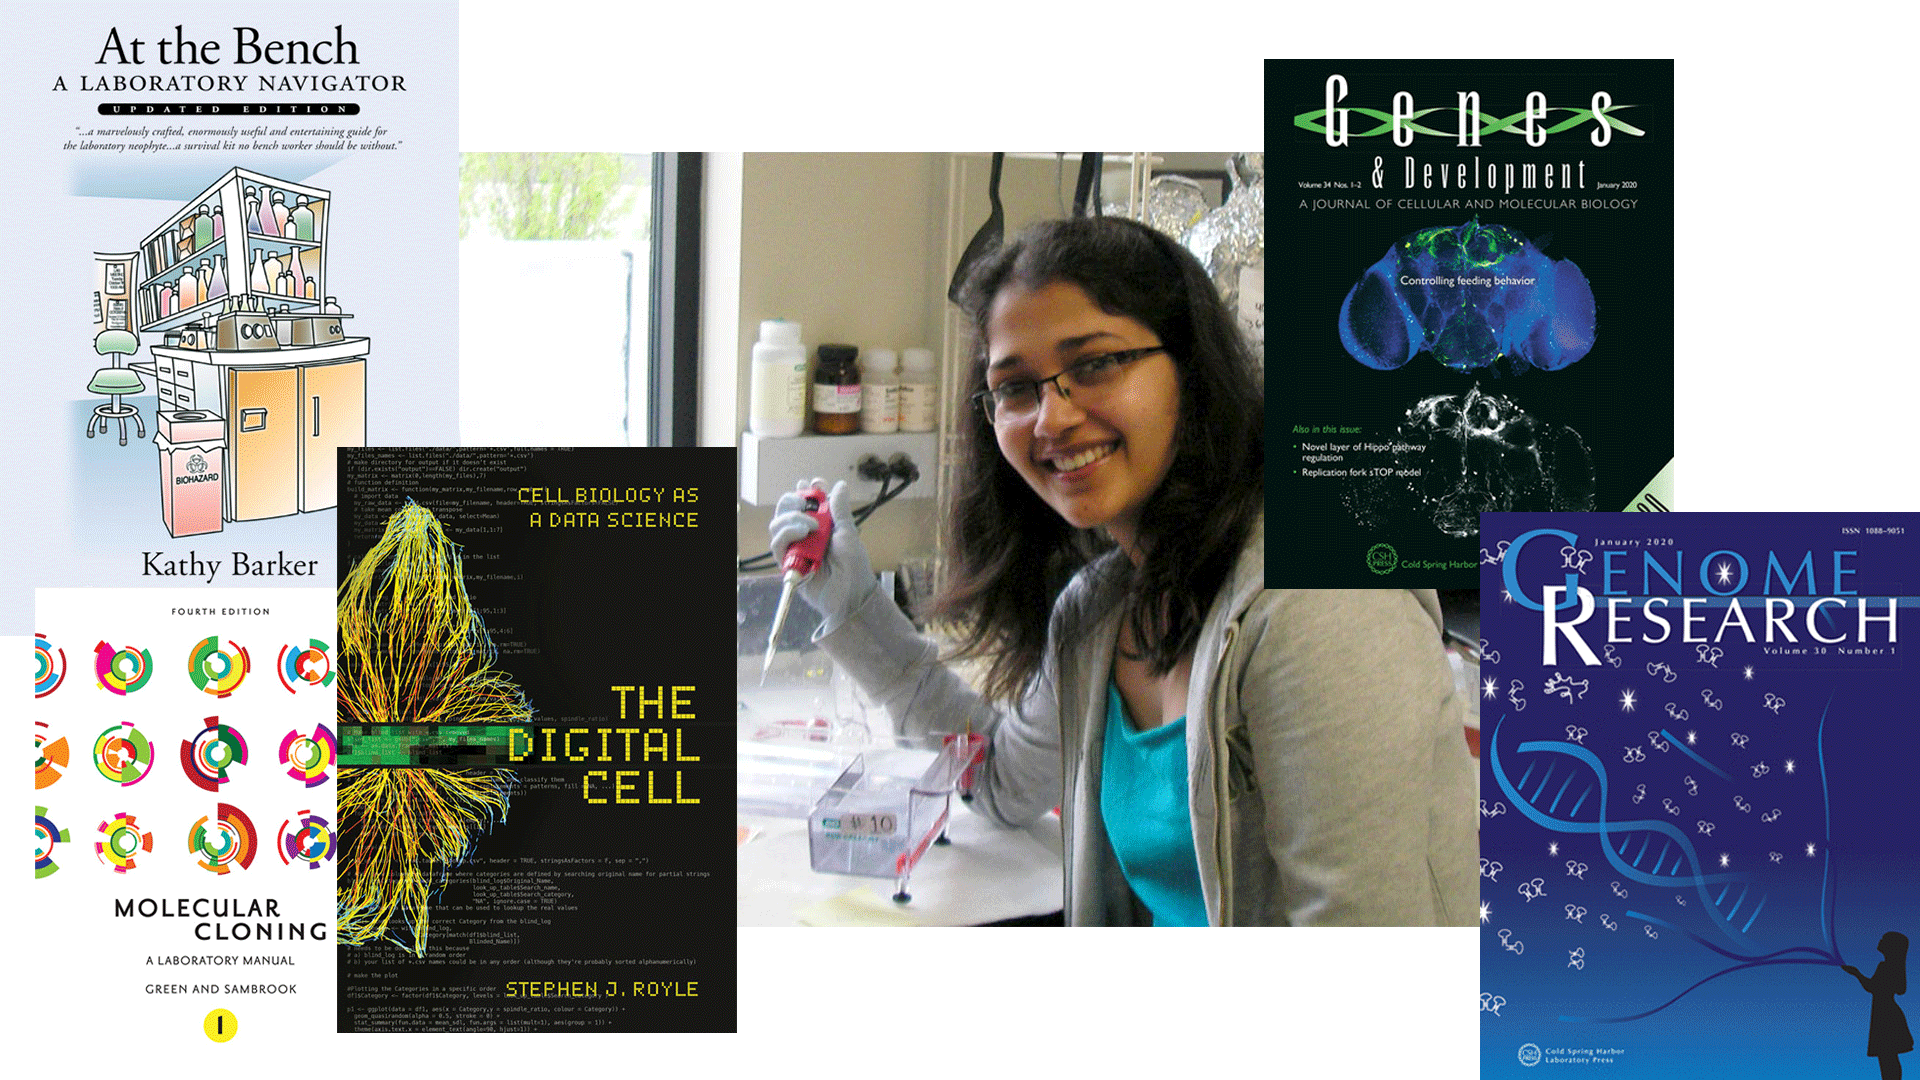 image of a student in a lab pipetting collaged with book covers from CSHL Press publications